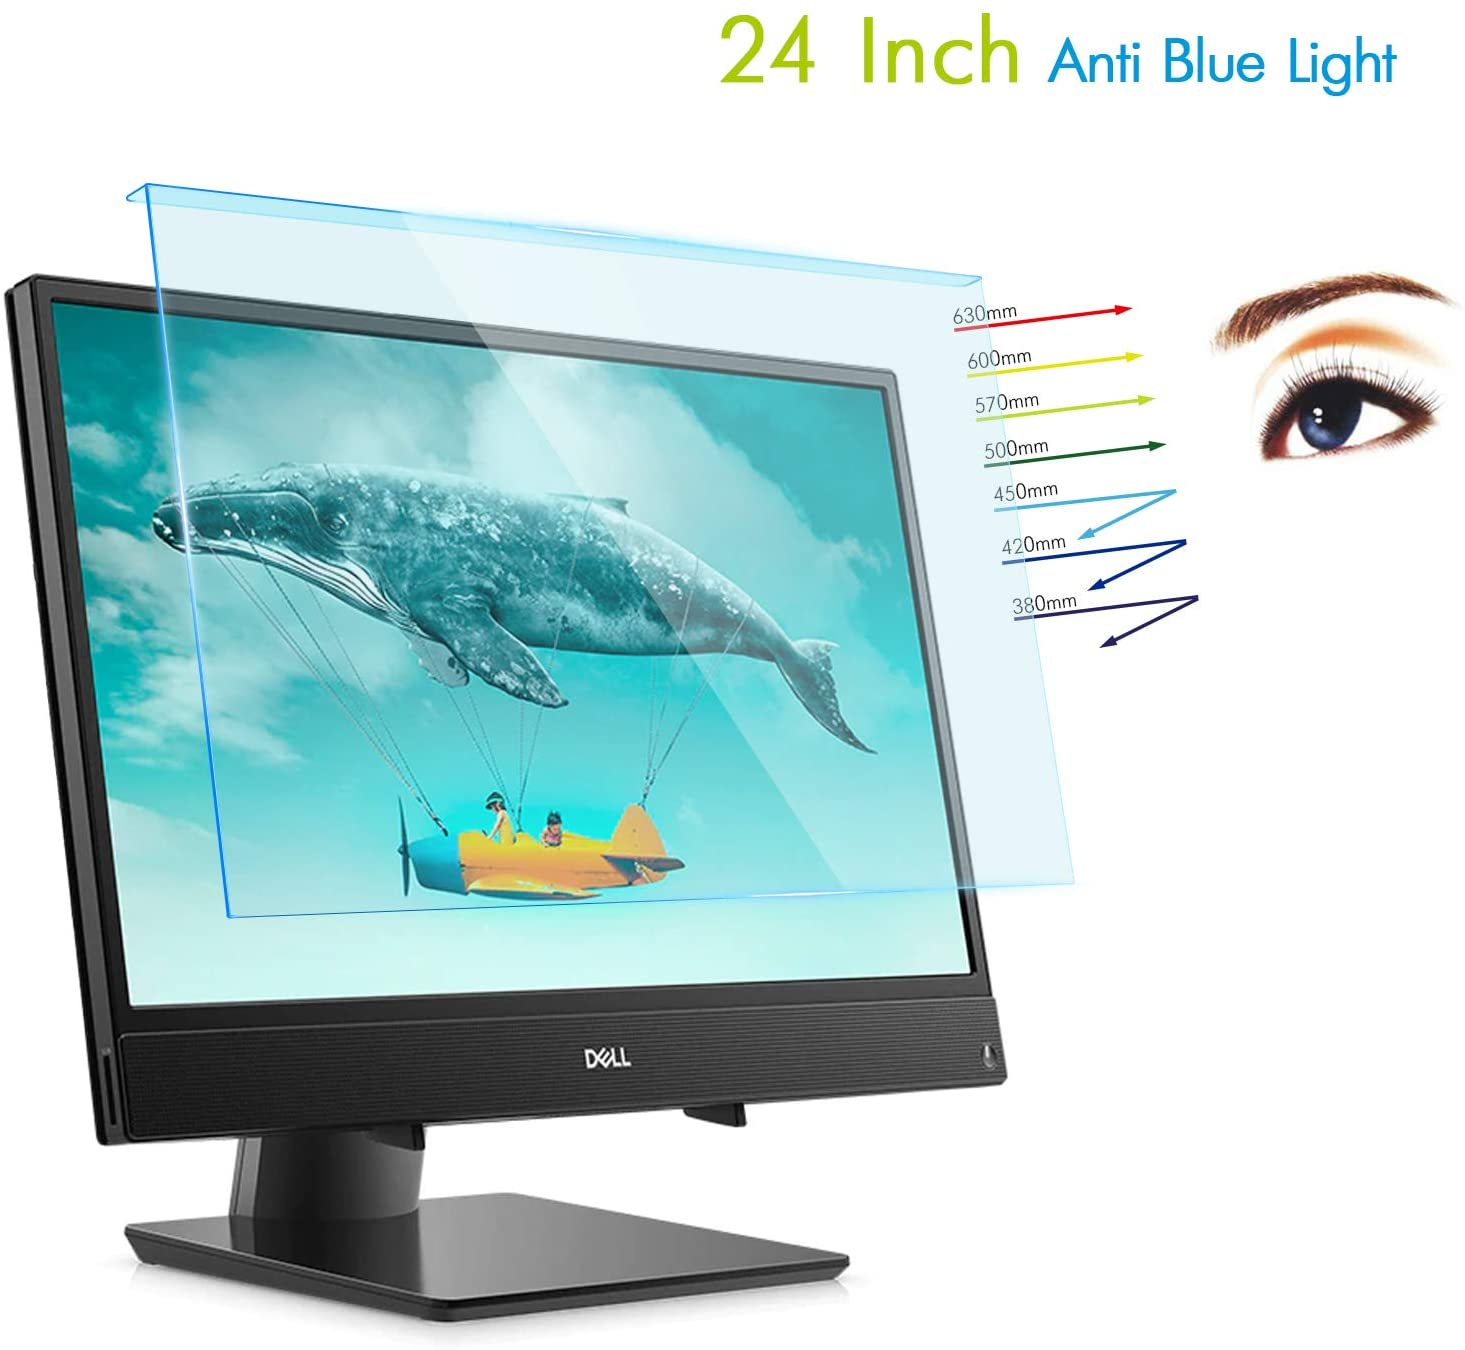 Lapogy 24 Inch Anti Blue Light Glare Acrylic Monitor Screen Protector for Computer Widescreen Desktop with 16:9 Aspect Monitor for 23-24